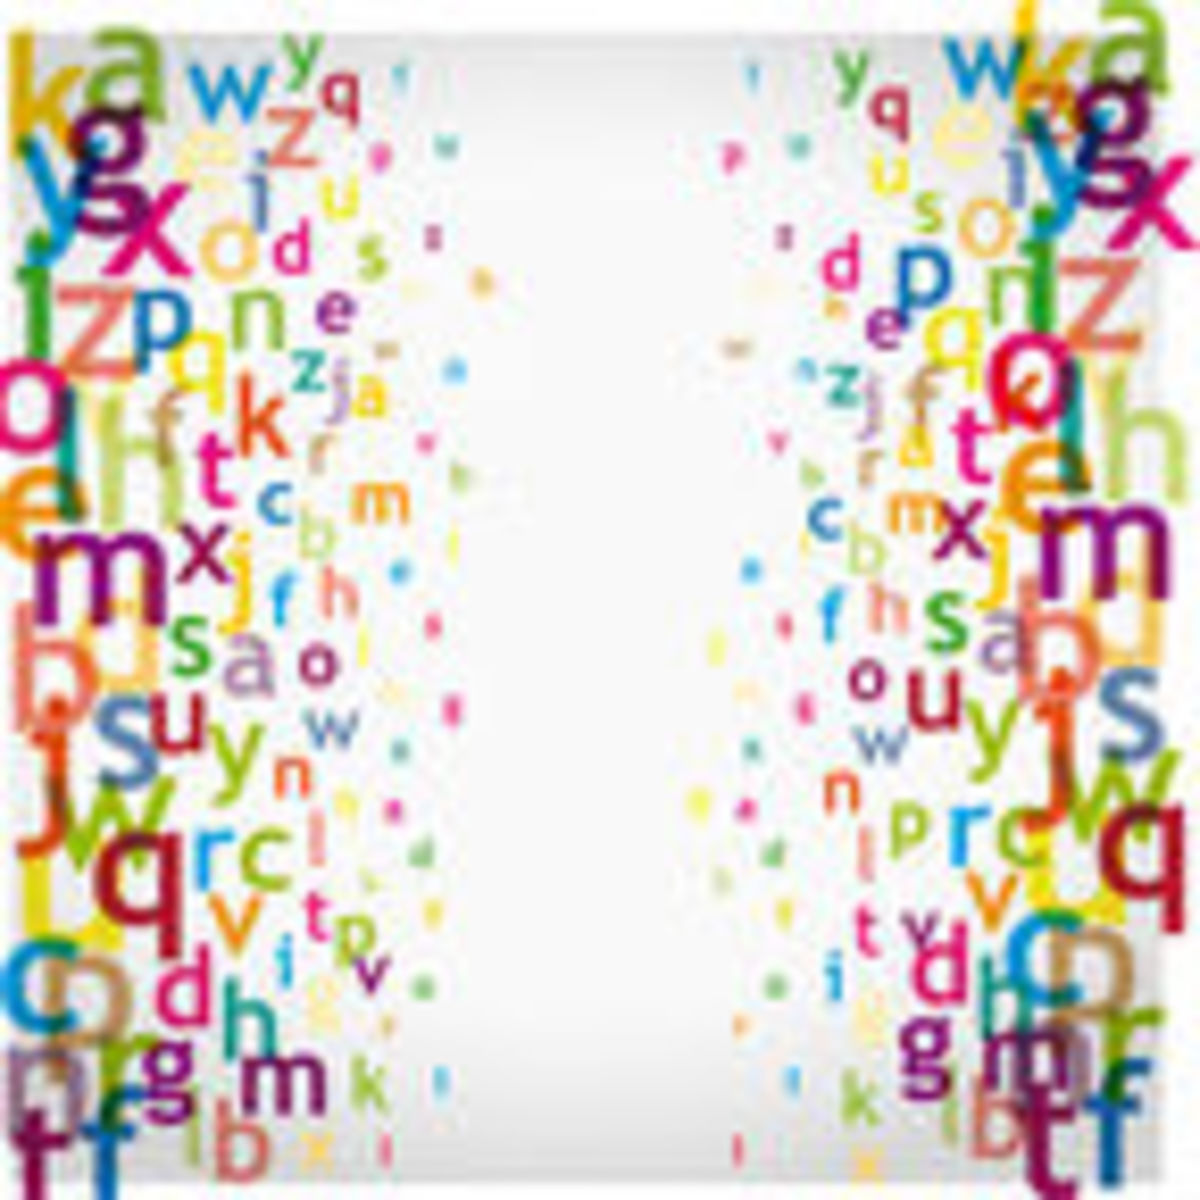 10 Questions on Bilingualism | Psychology Today